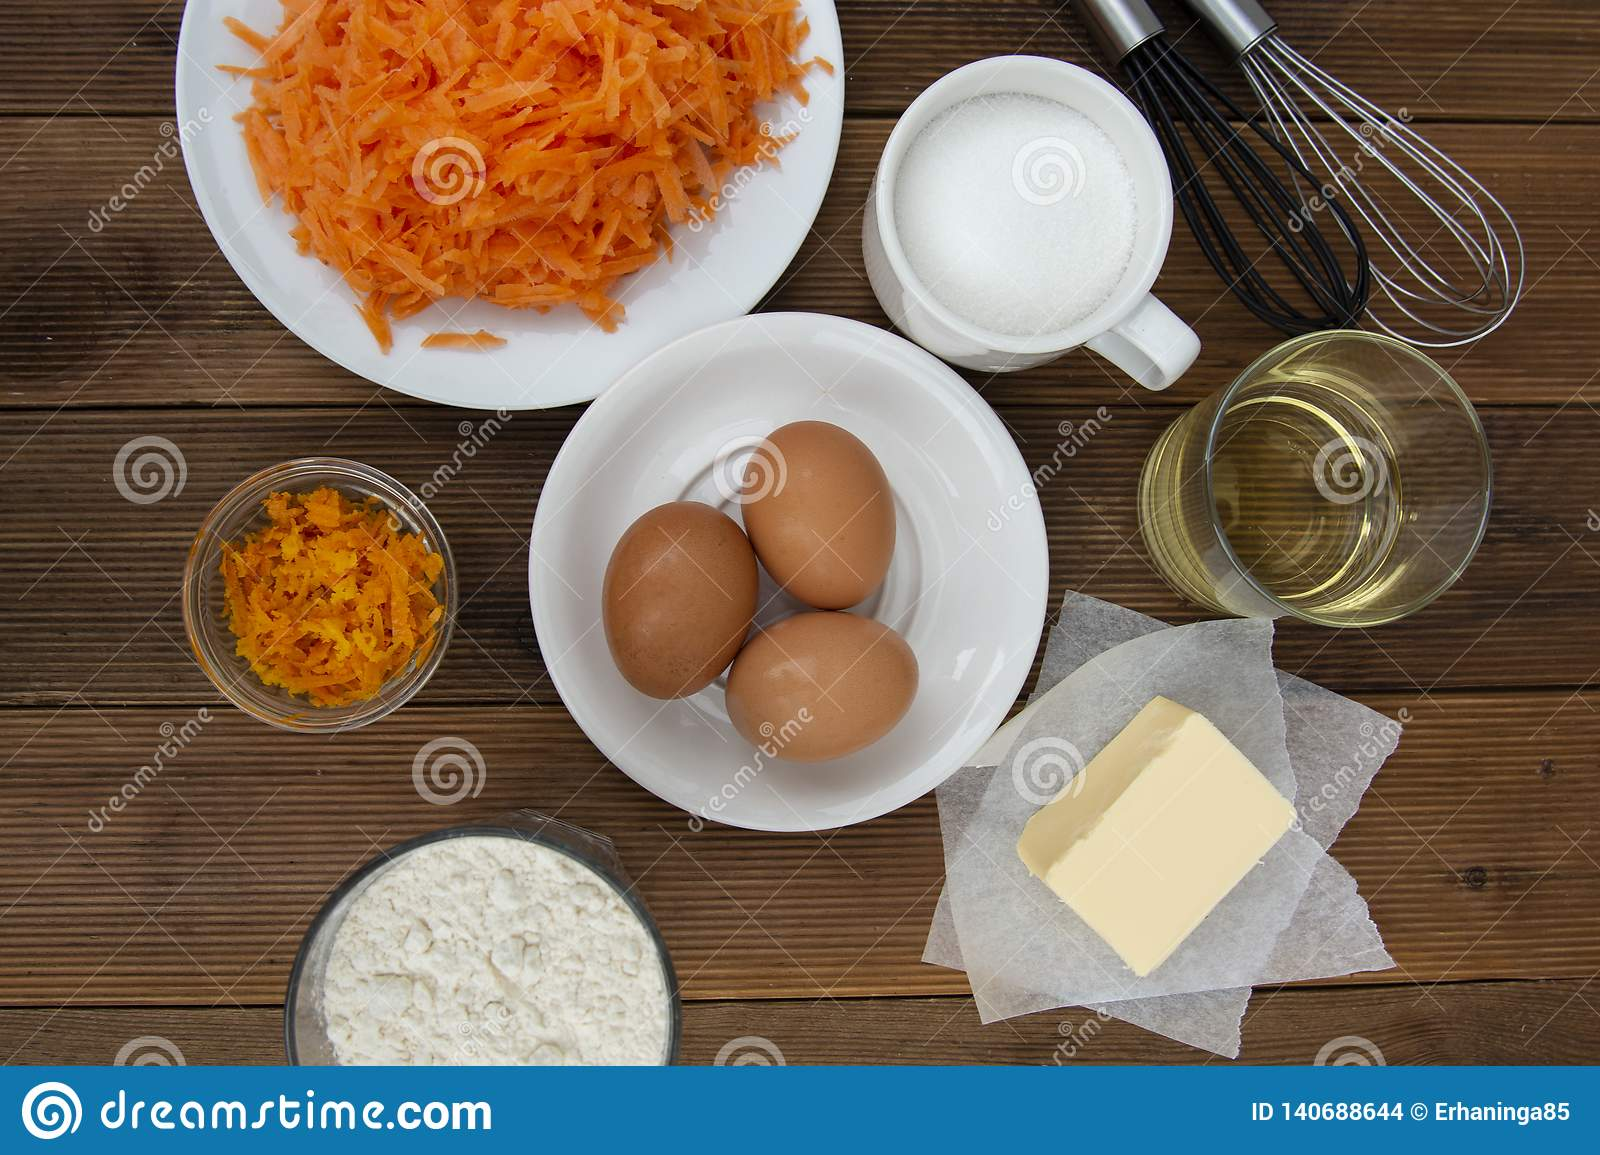 Carrot Cake Recipe Making Dough For Carrot Cake Pie Muffins Or